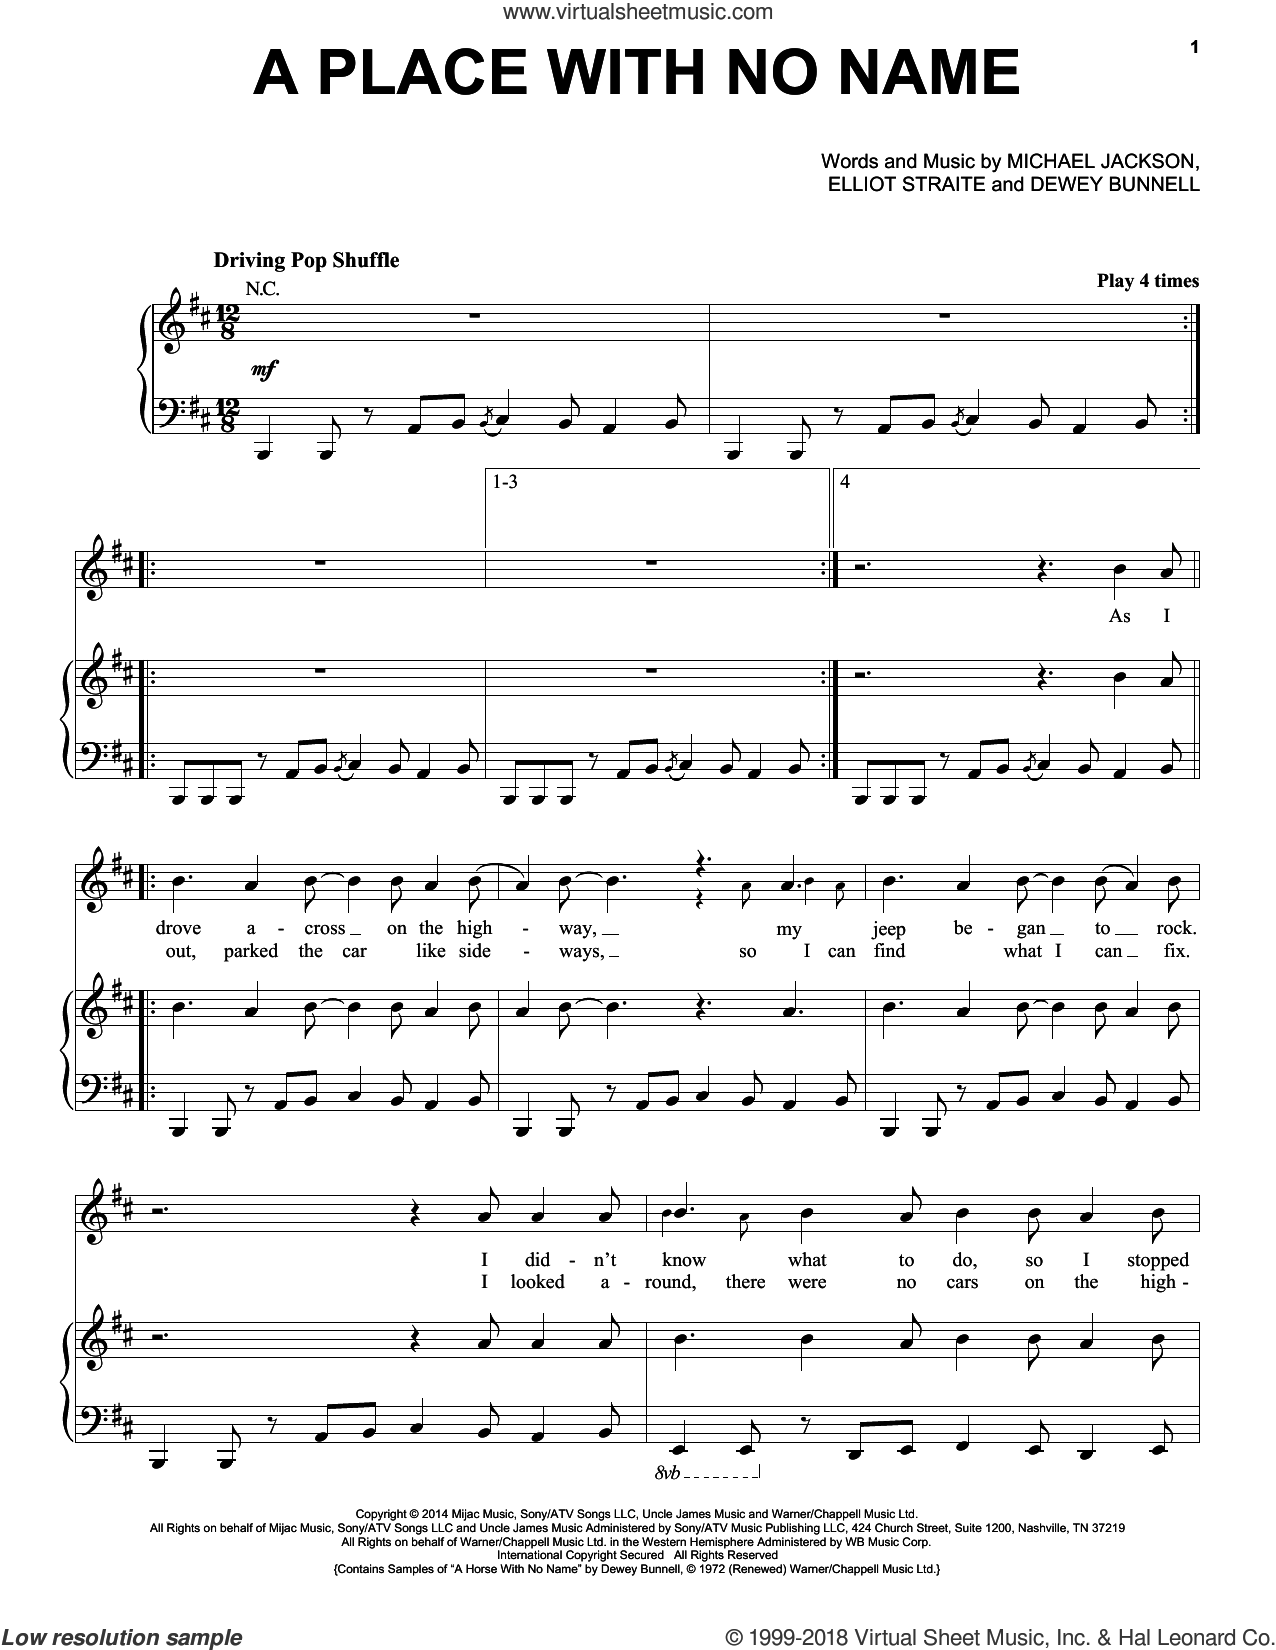 A Place With No Name sheet music for voice, piano or guitar by Elliot Straite, Dewey Bunnell and Michael Jackson. Score Image Preview.